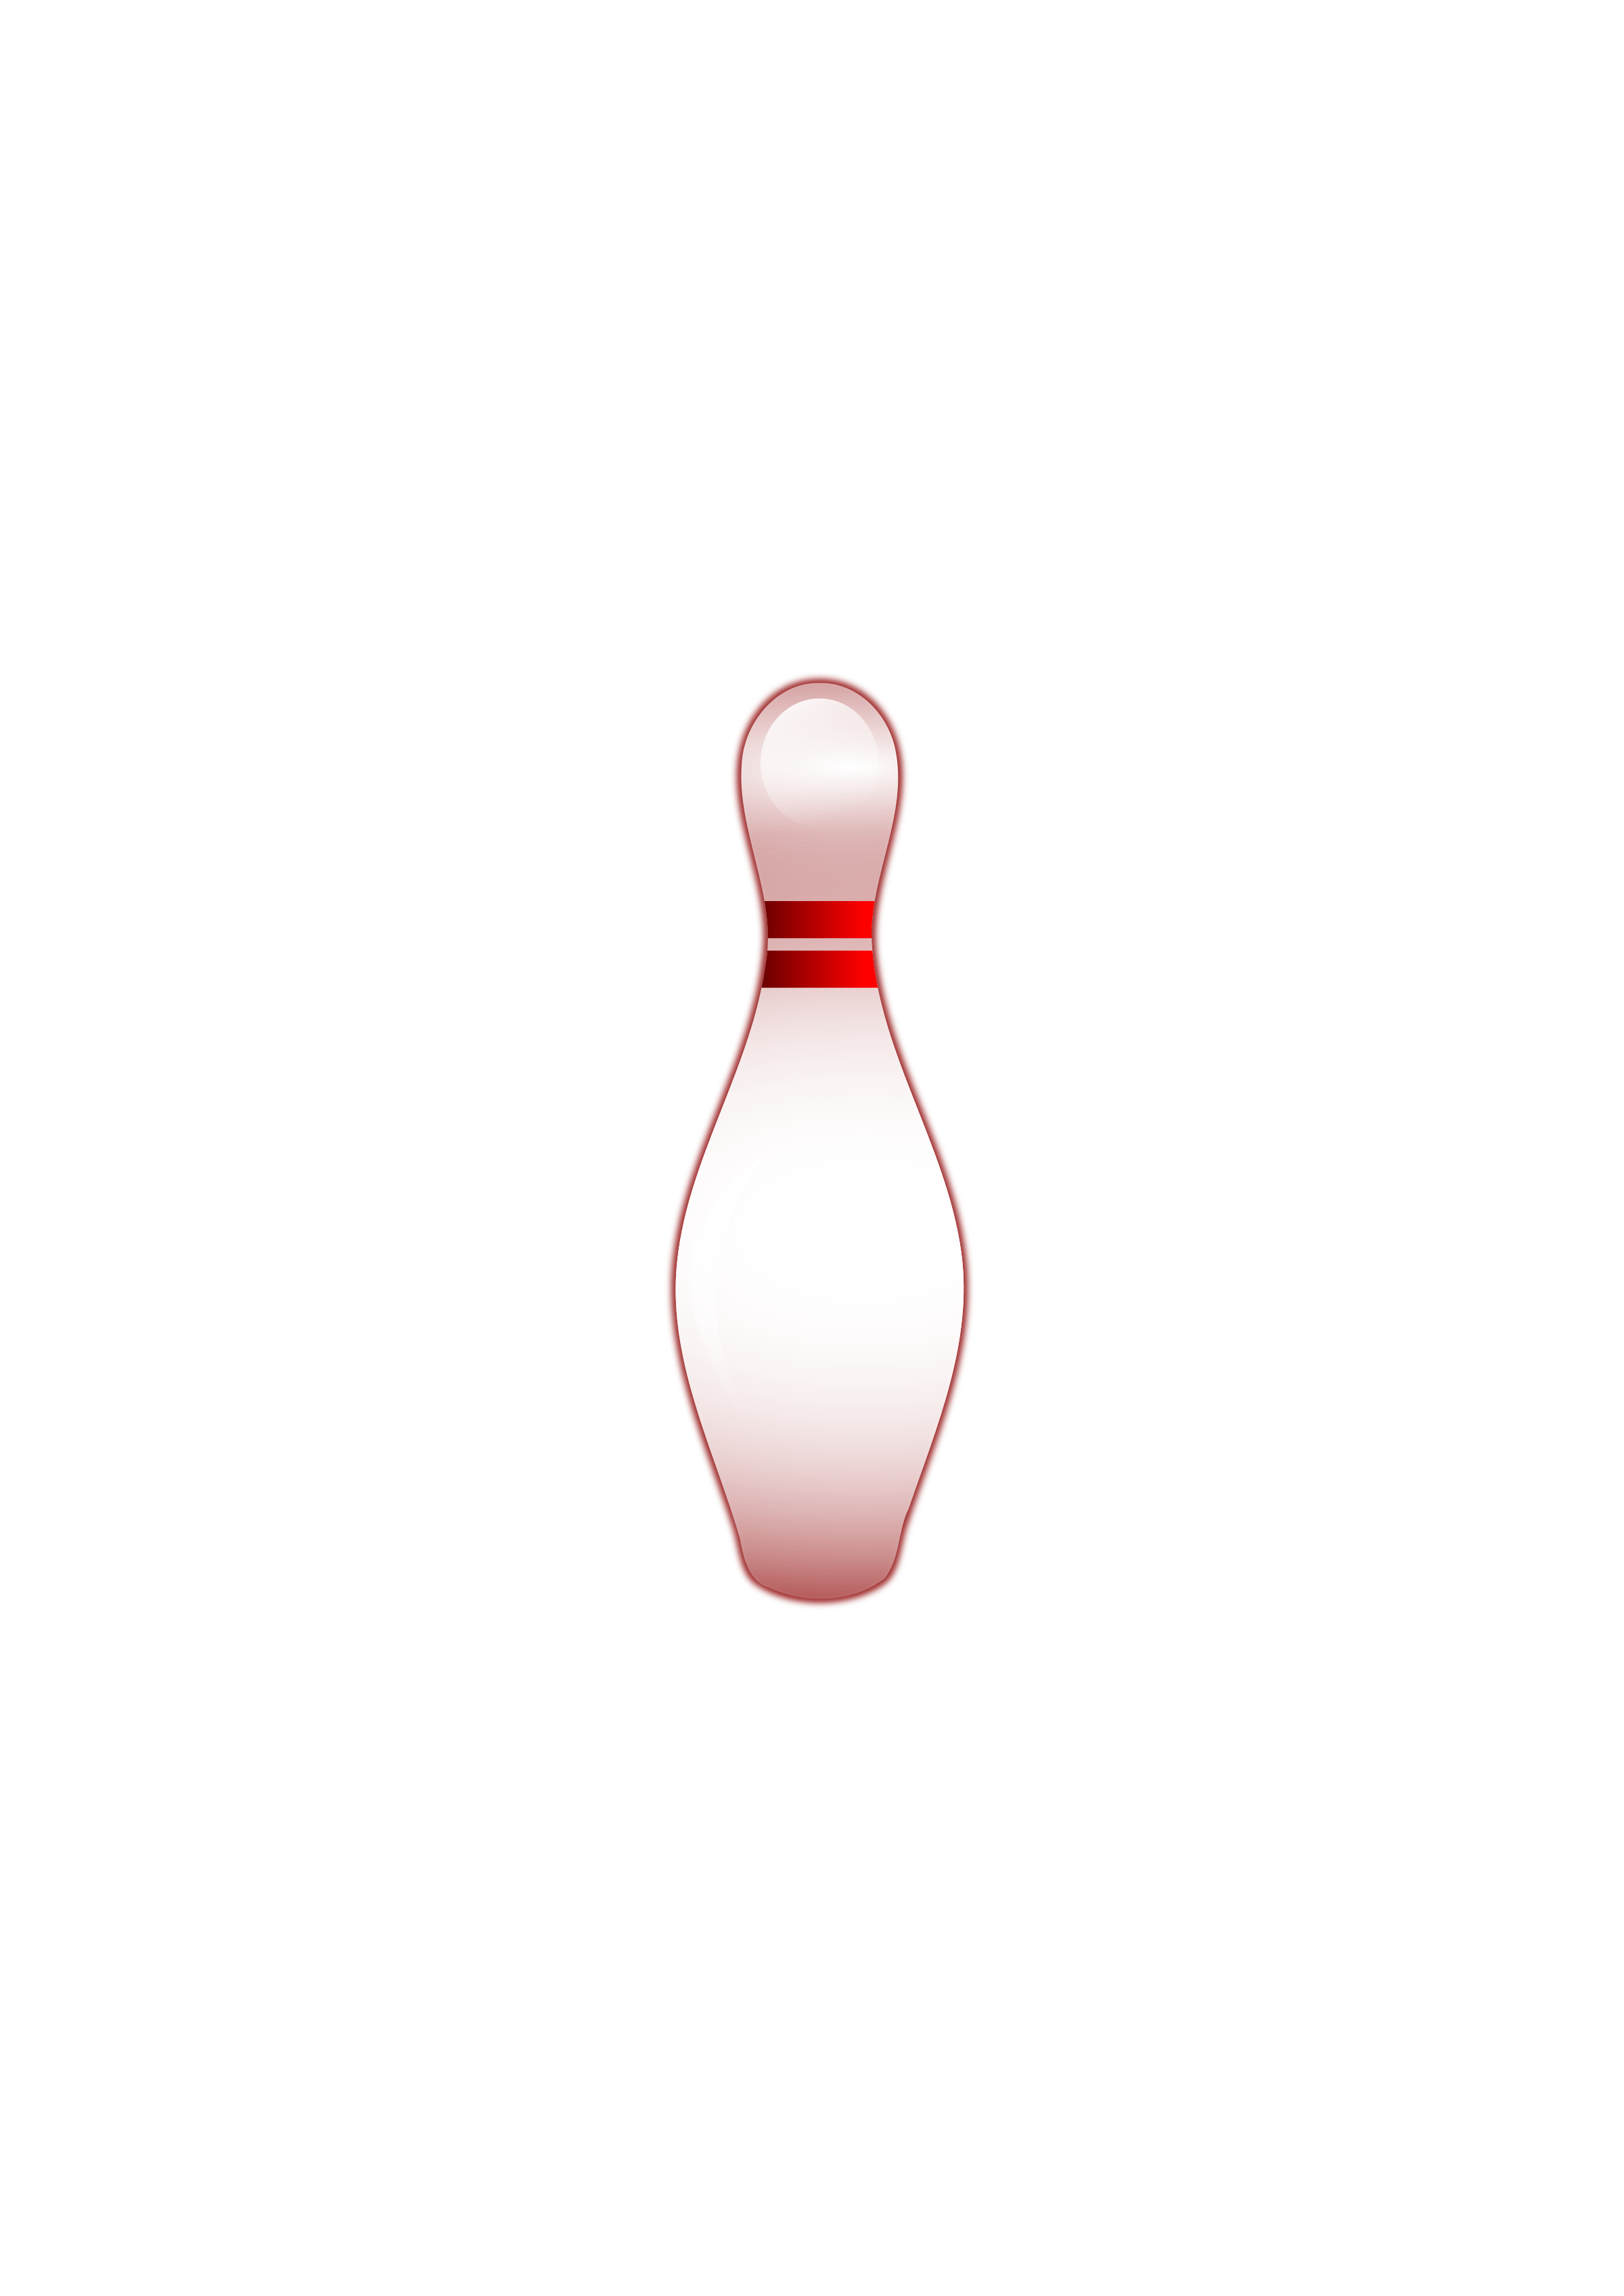 Bowling Pin by Siddymcbill